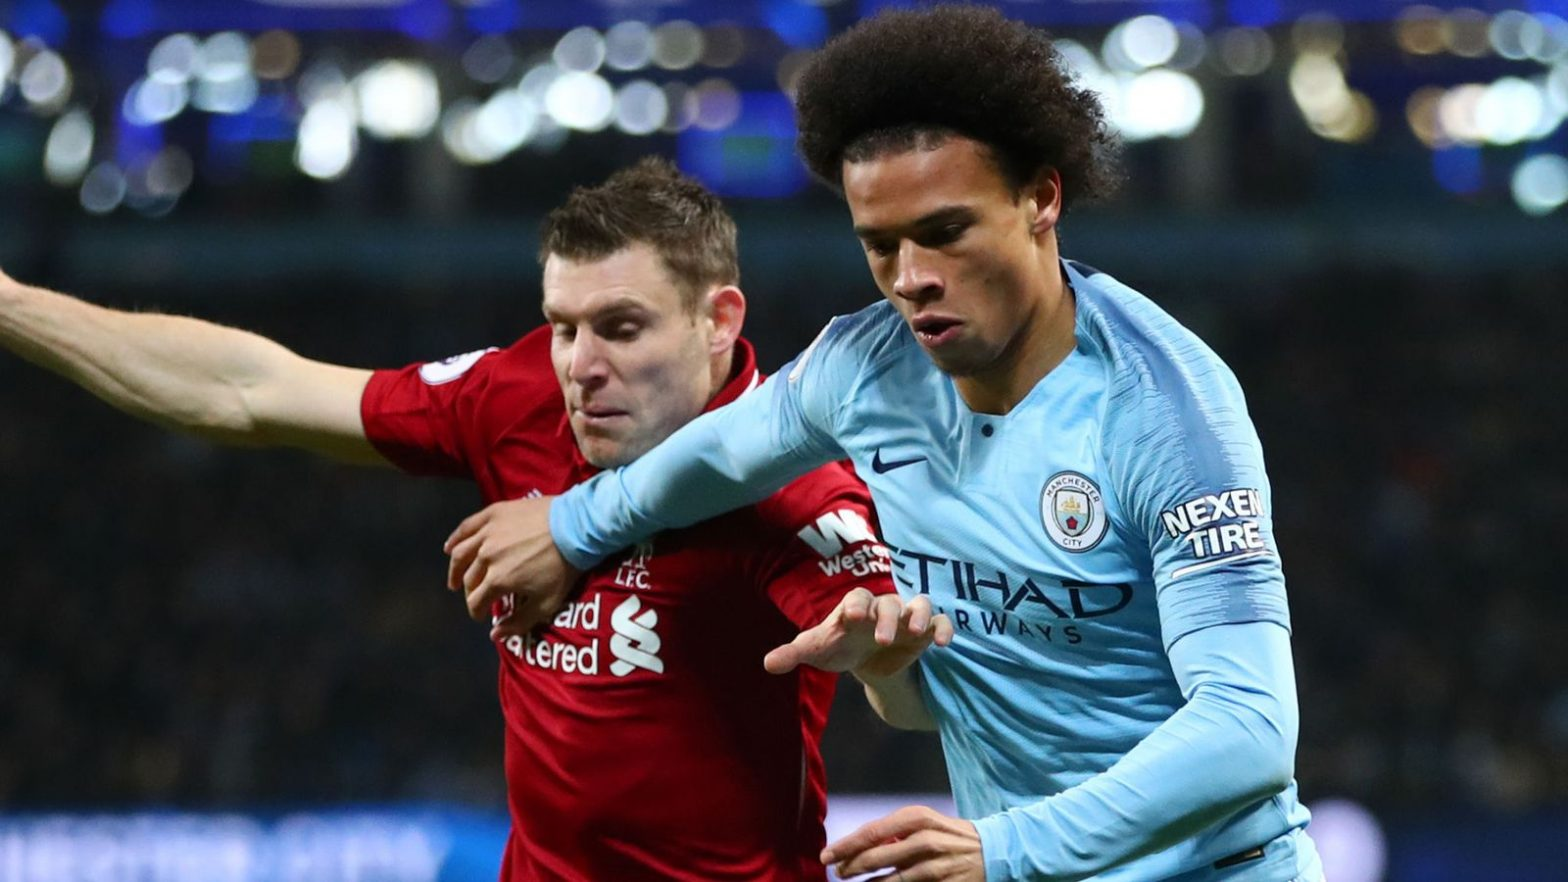 Contrasting run-ins for City, Liverpool